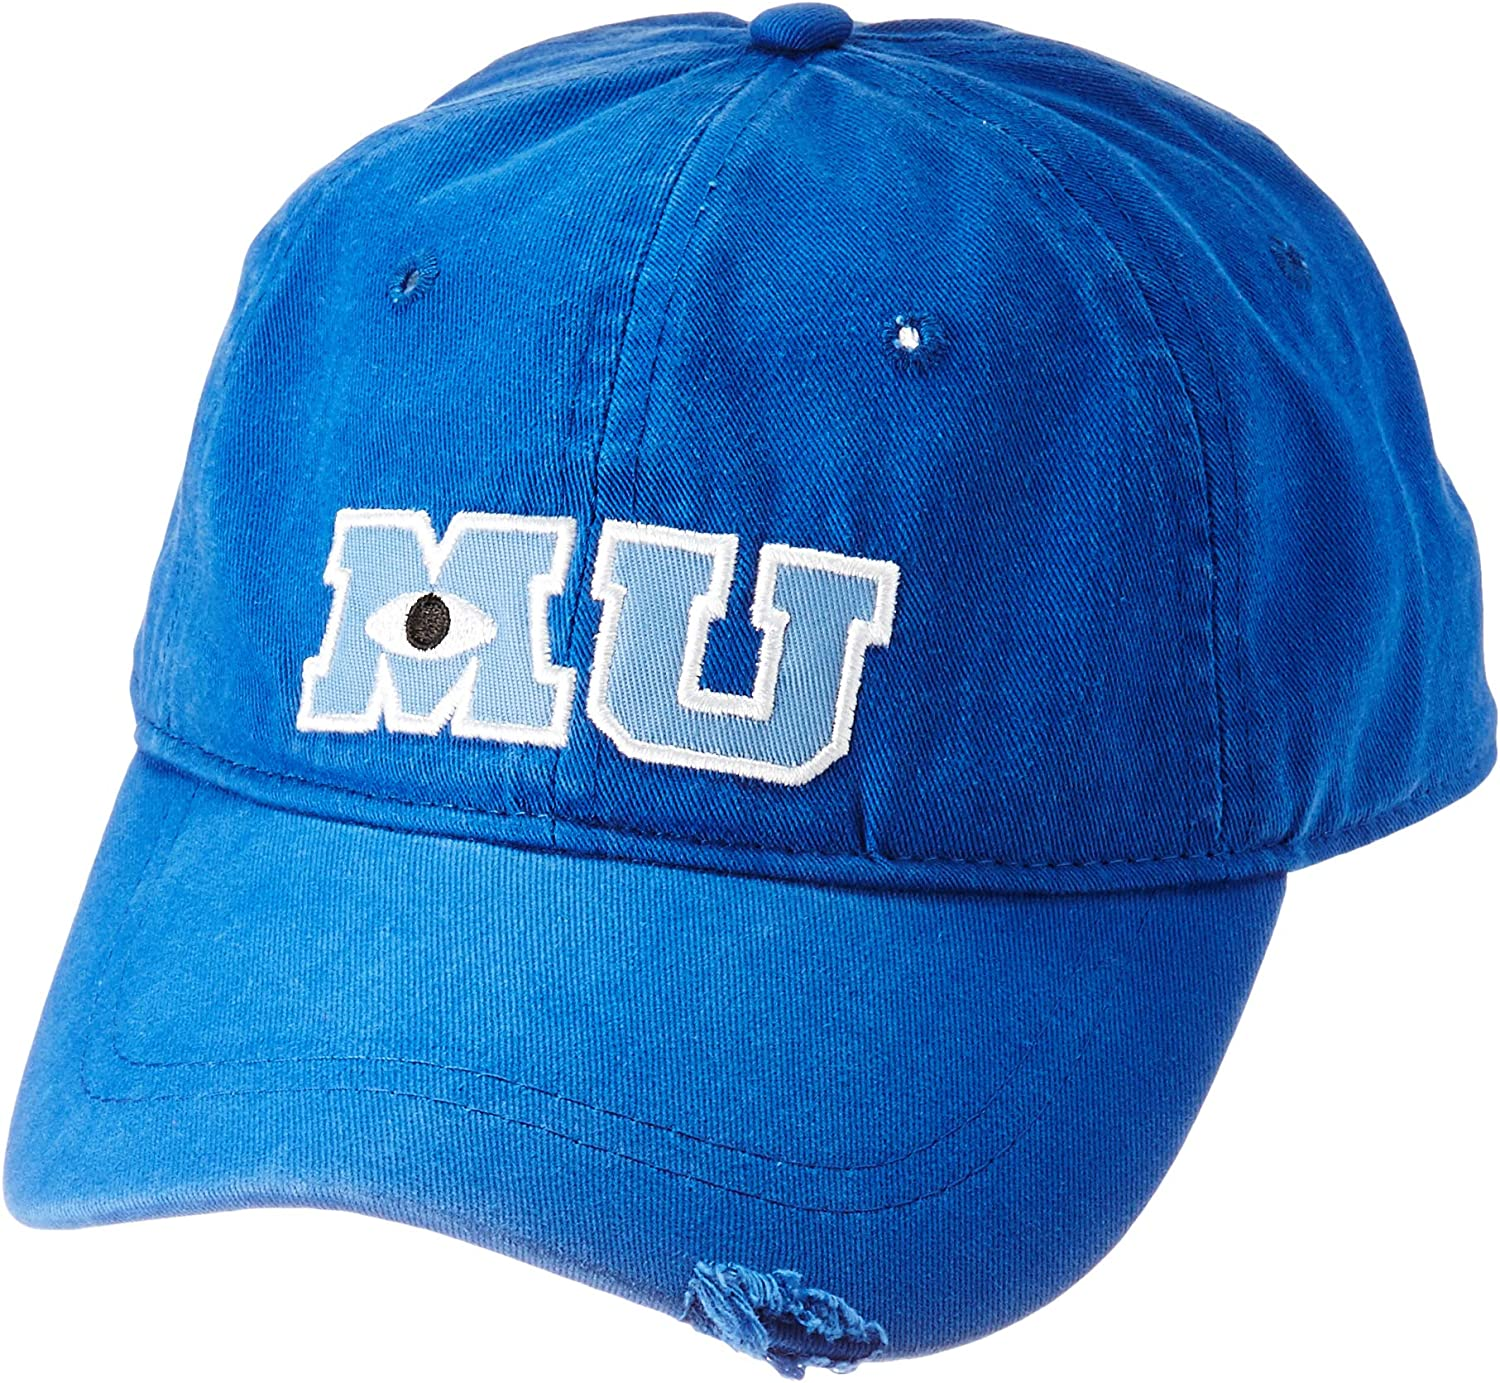 Disney Pixar Monsters University Adjustable Snapback Hat Cap At Amazon Men S Clothing Store